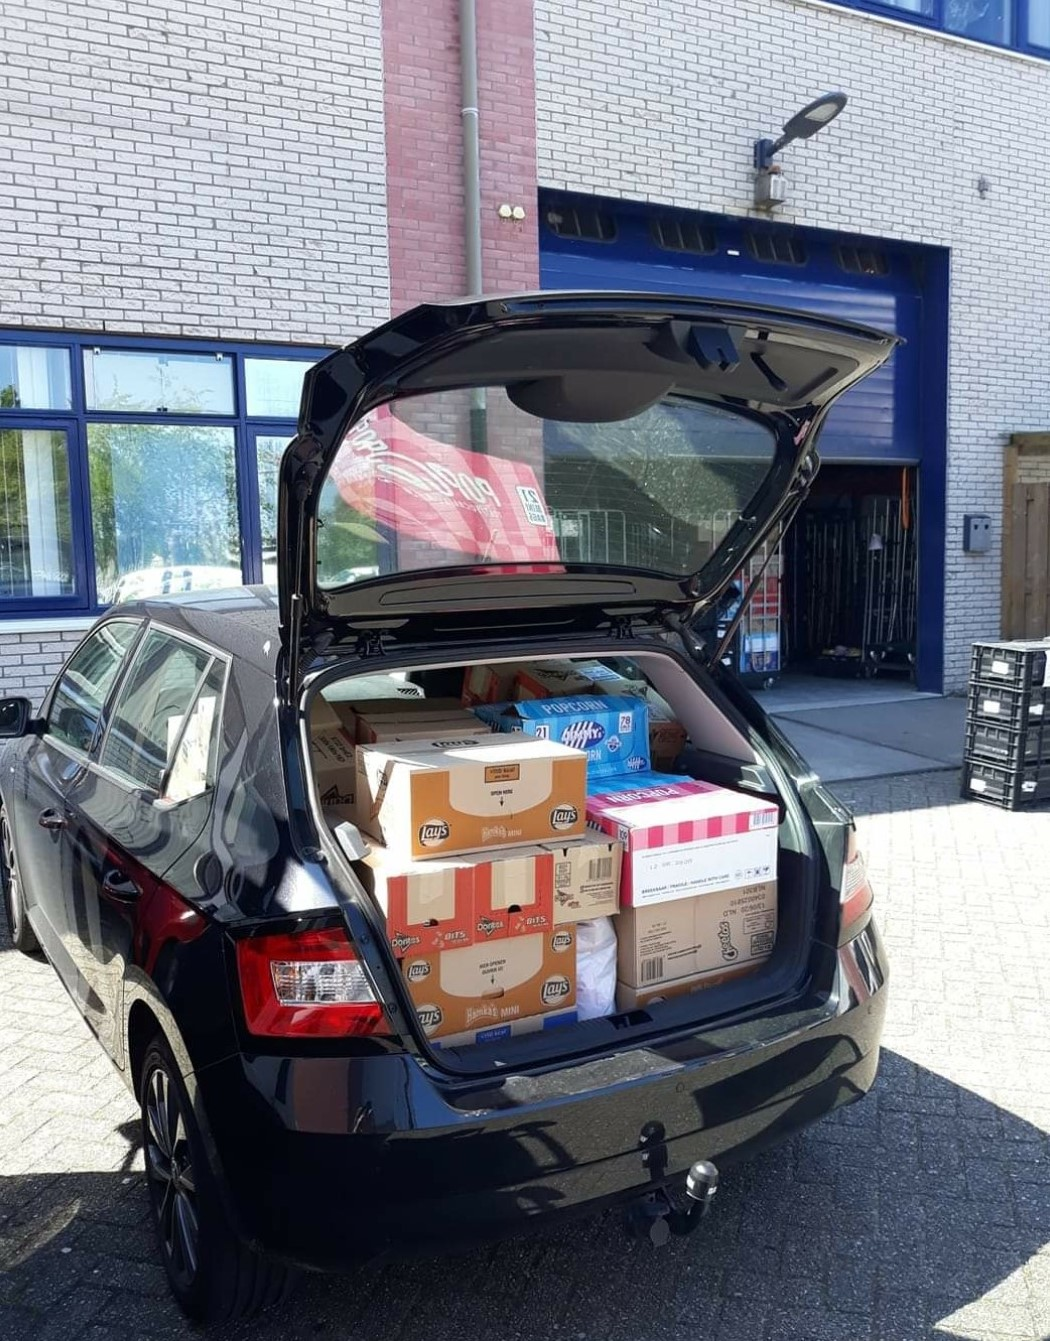 DT 2 - Drive-through gaat in juni door